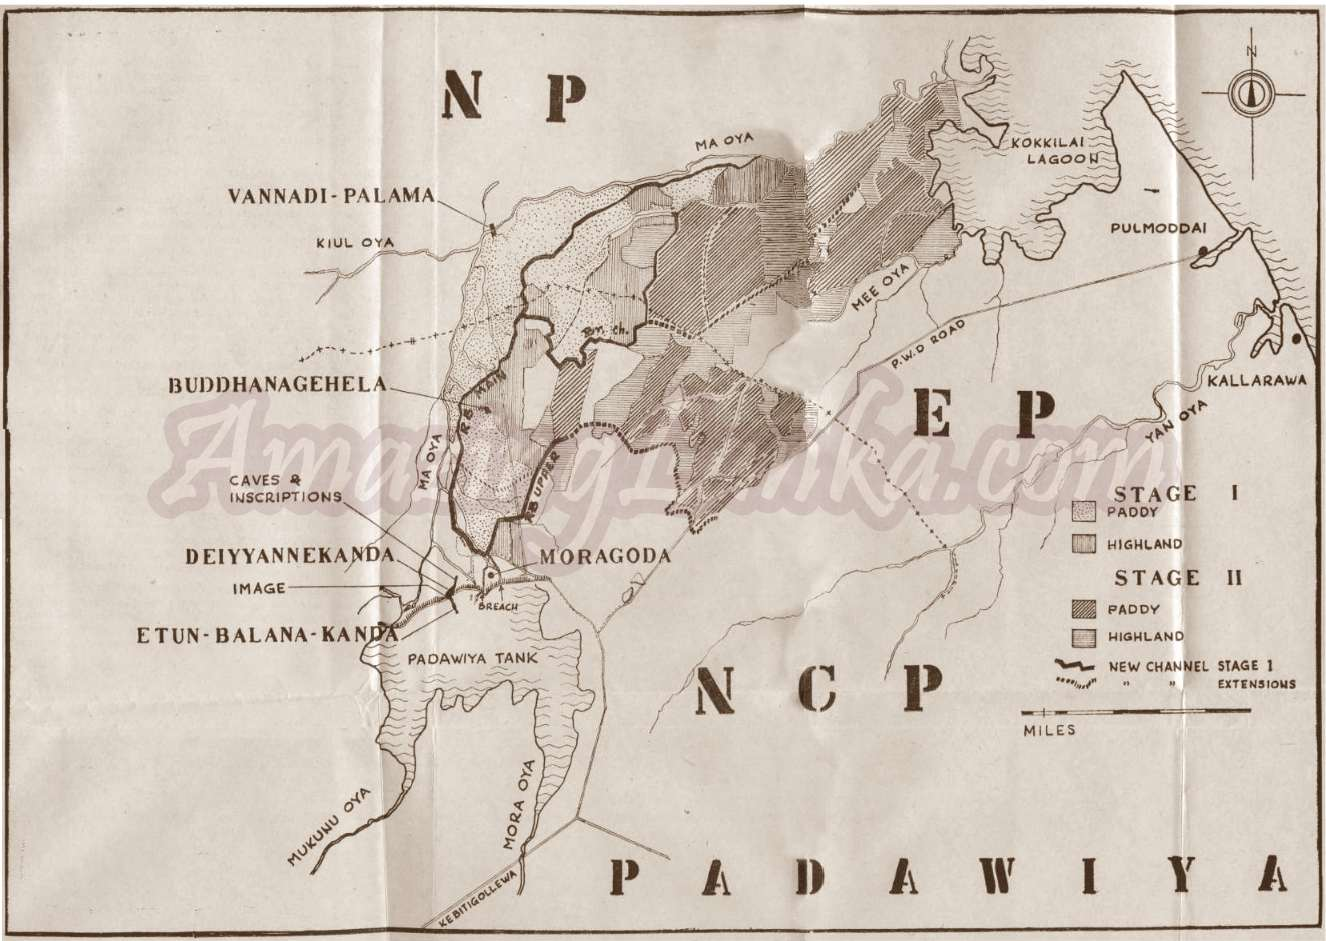 A map of Padaviya area drawn in 1969 based on colonial maps.